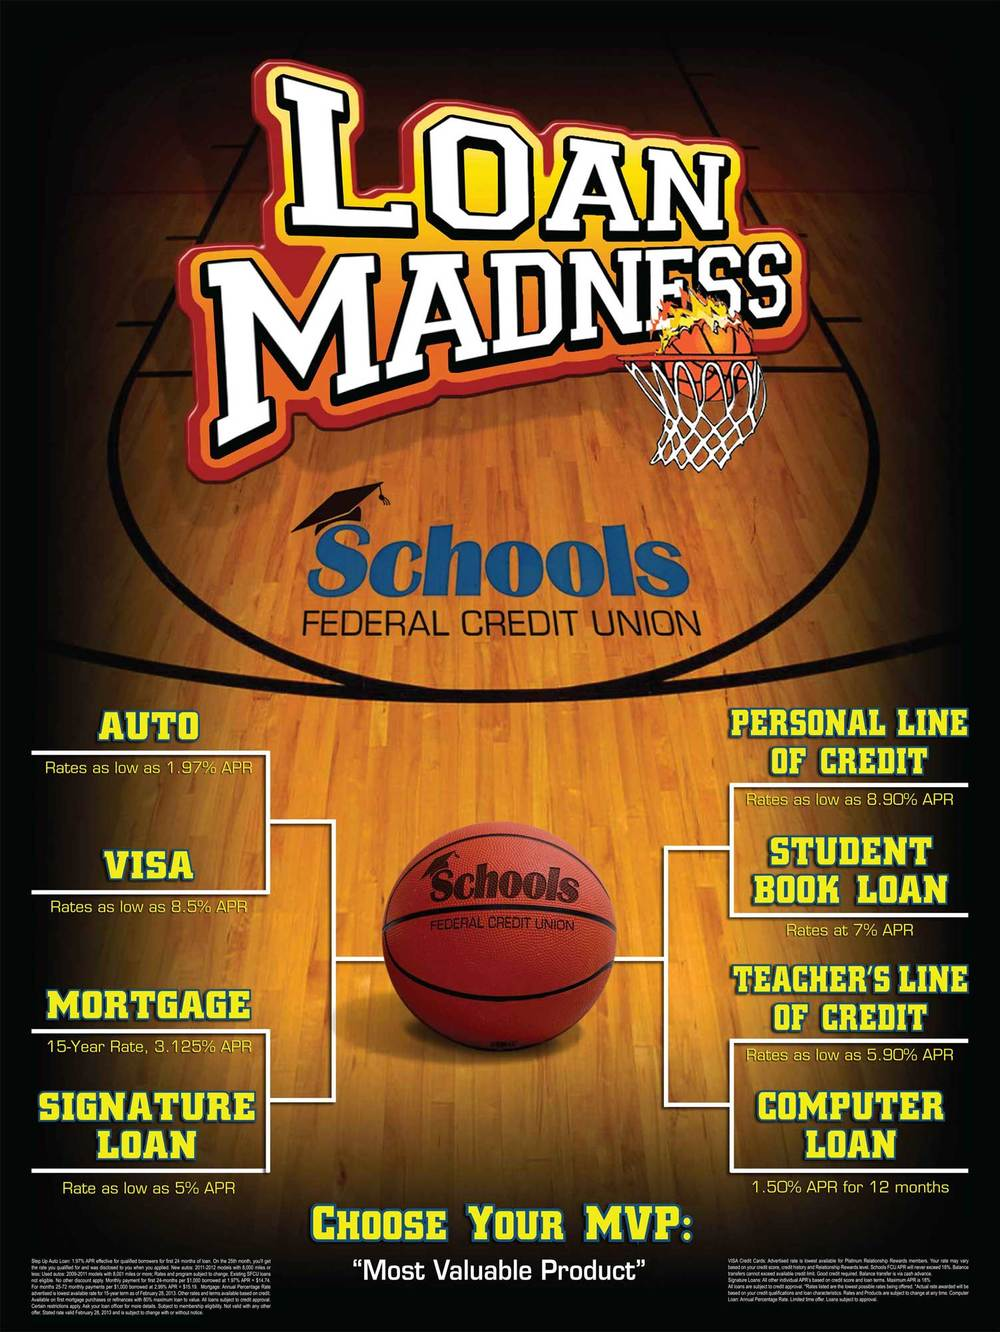 SFCU_March-Madness_Poster_Red-Zipper-Design.jpg